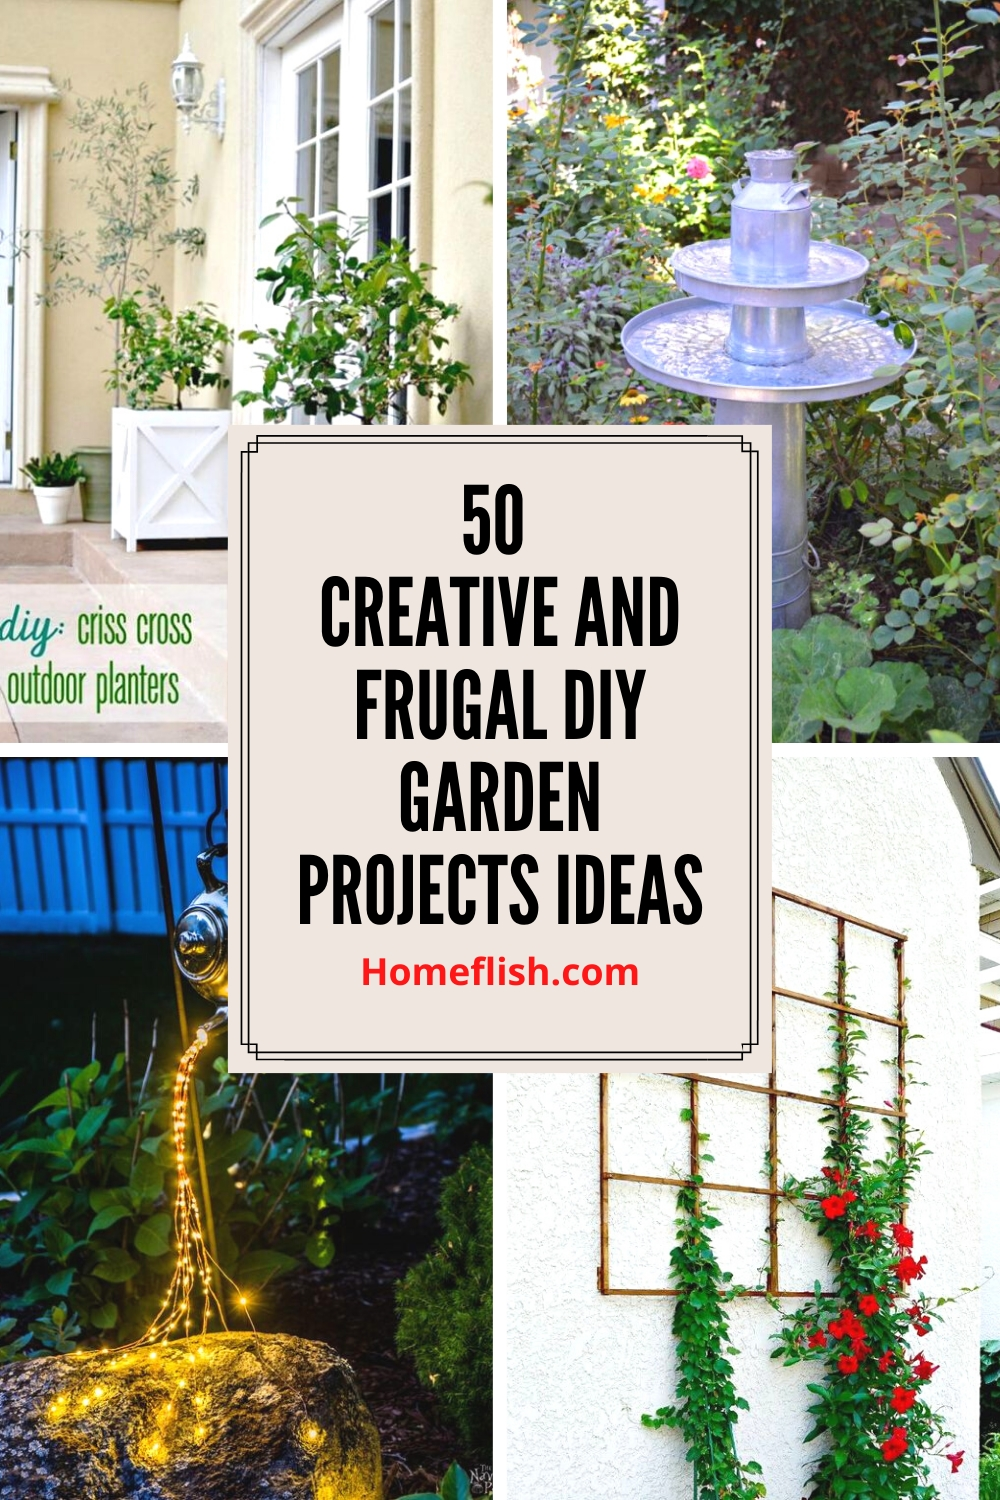 50 Creative And Frugal Diy Garden Projects Ideas Homeflish